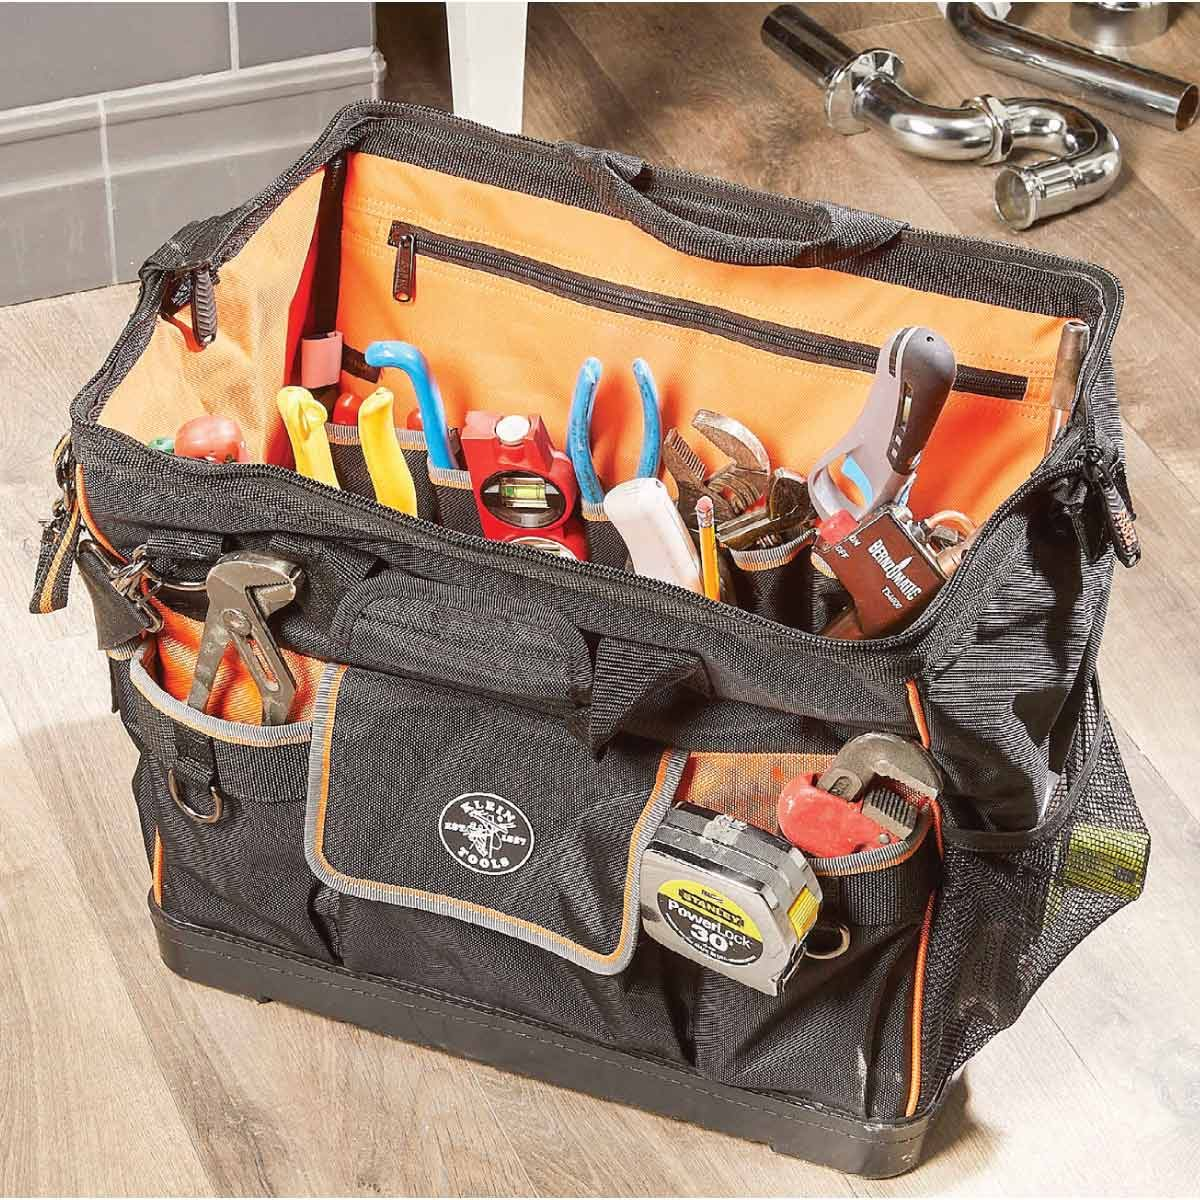 Tradesman Pro Wide-Open Tool Bag by Klein Tools Featured